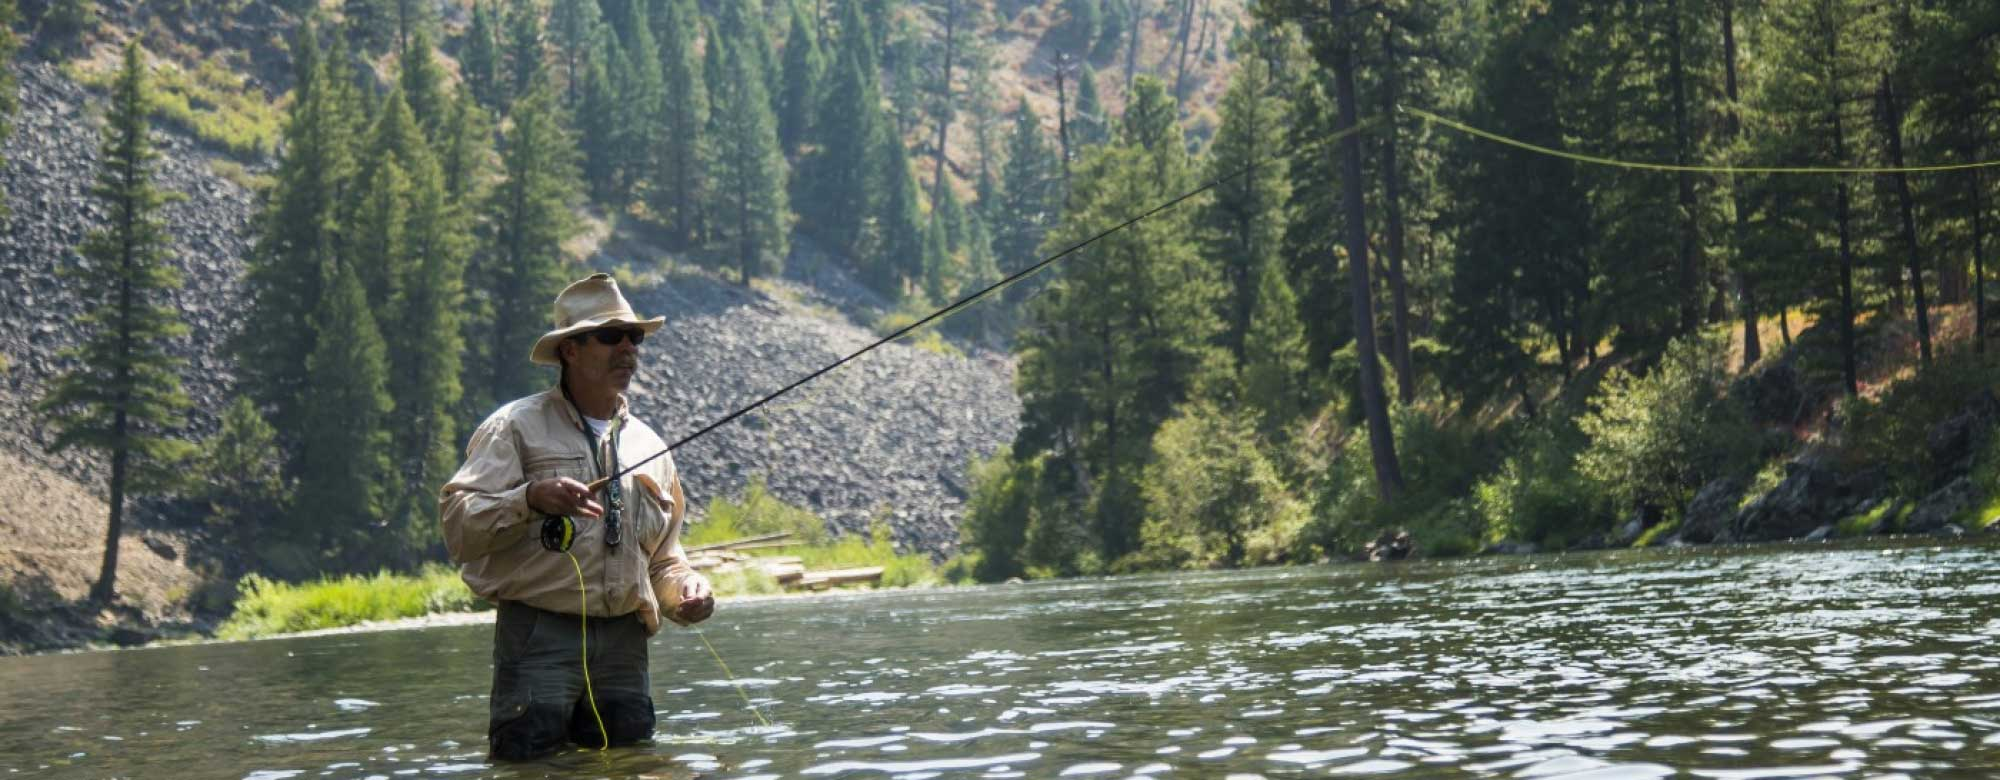 HRE_Fly_Fishing_Casting-2000x780_c